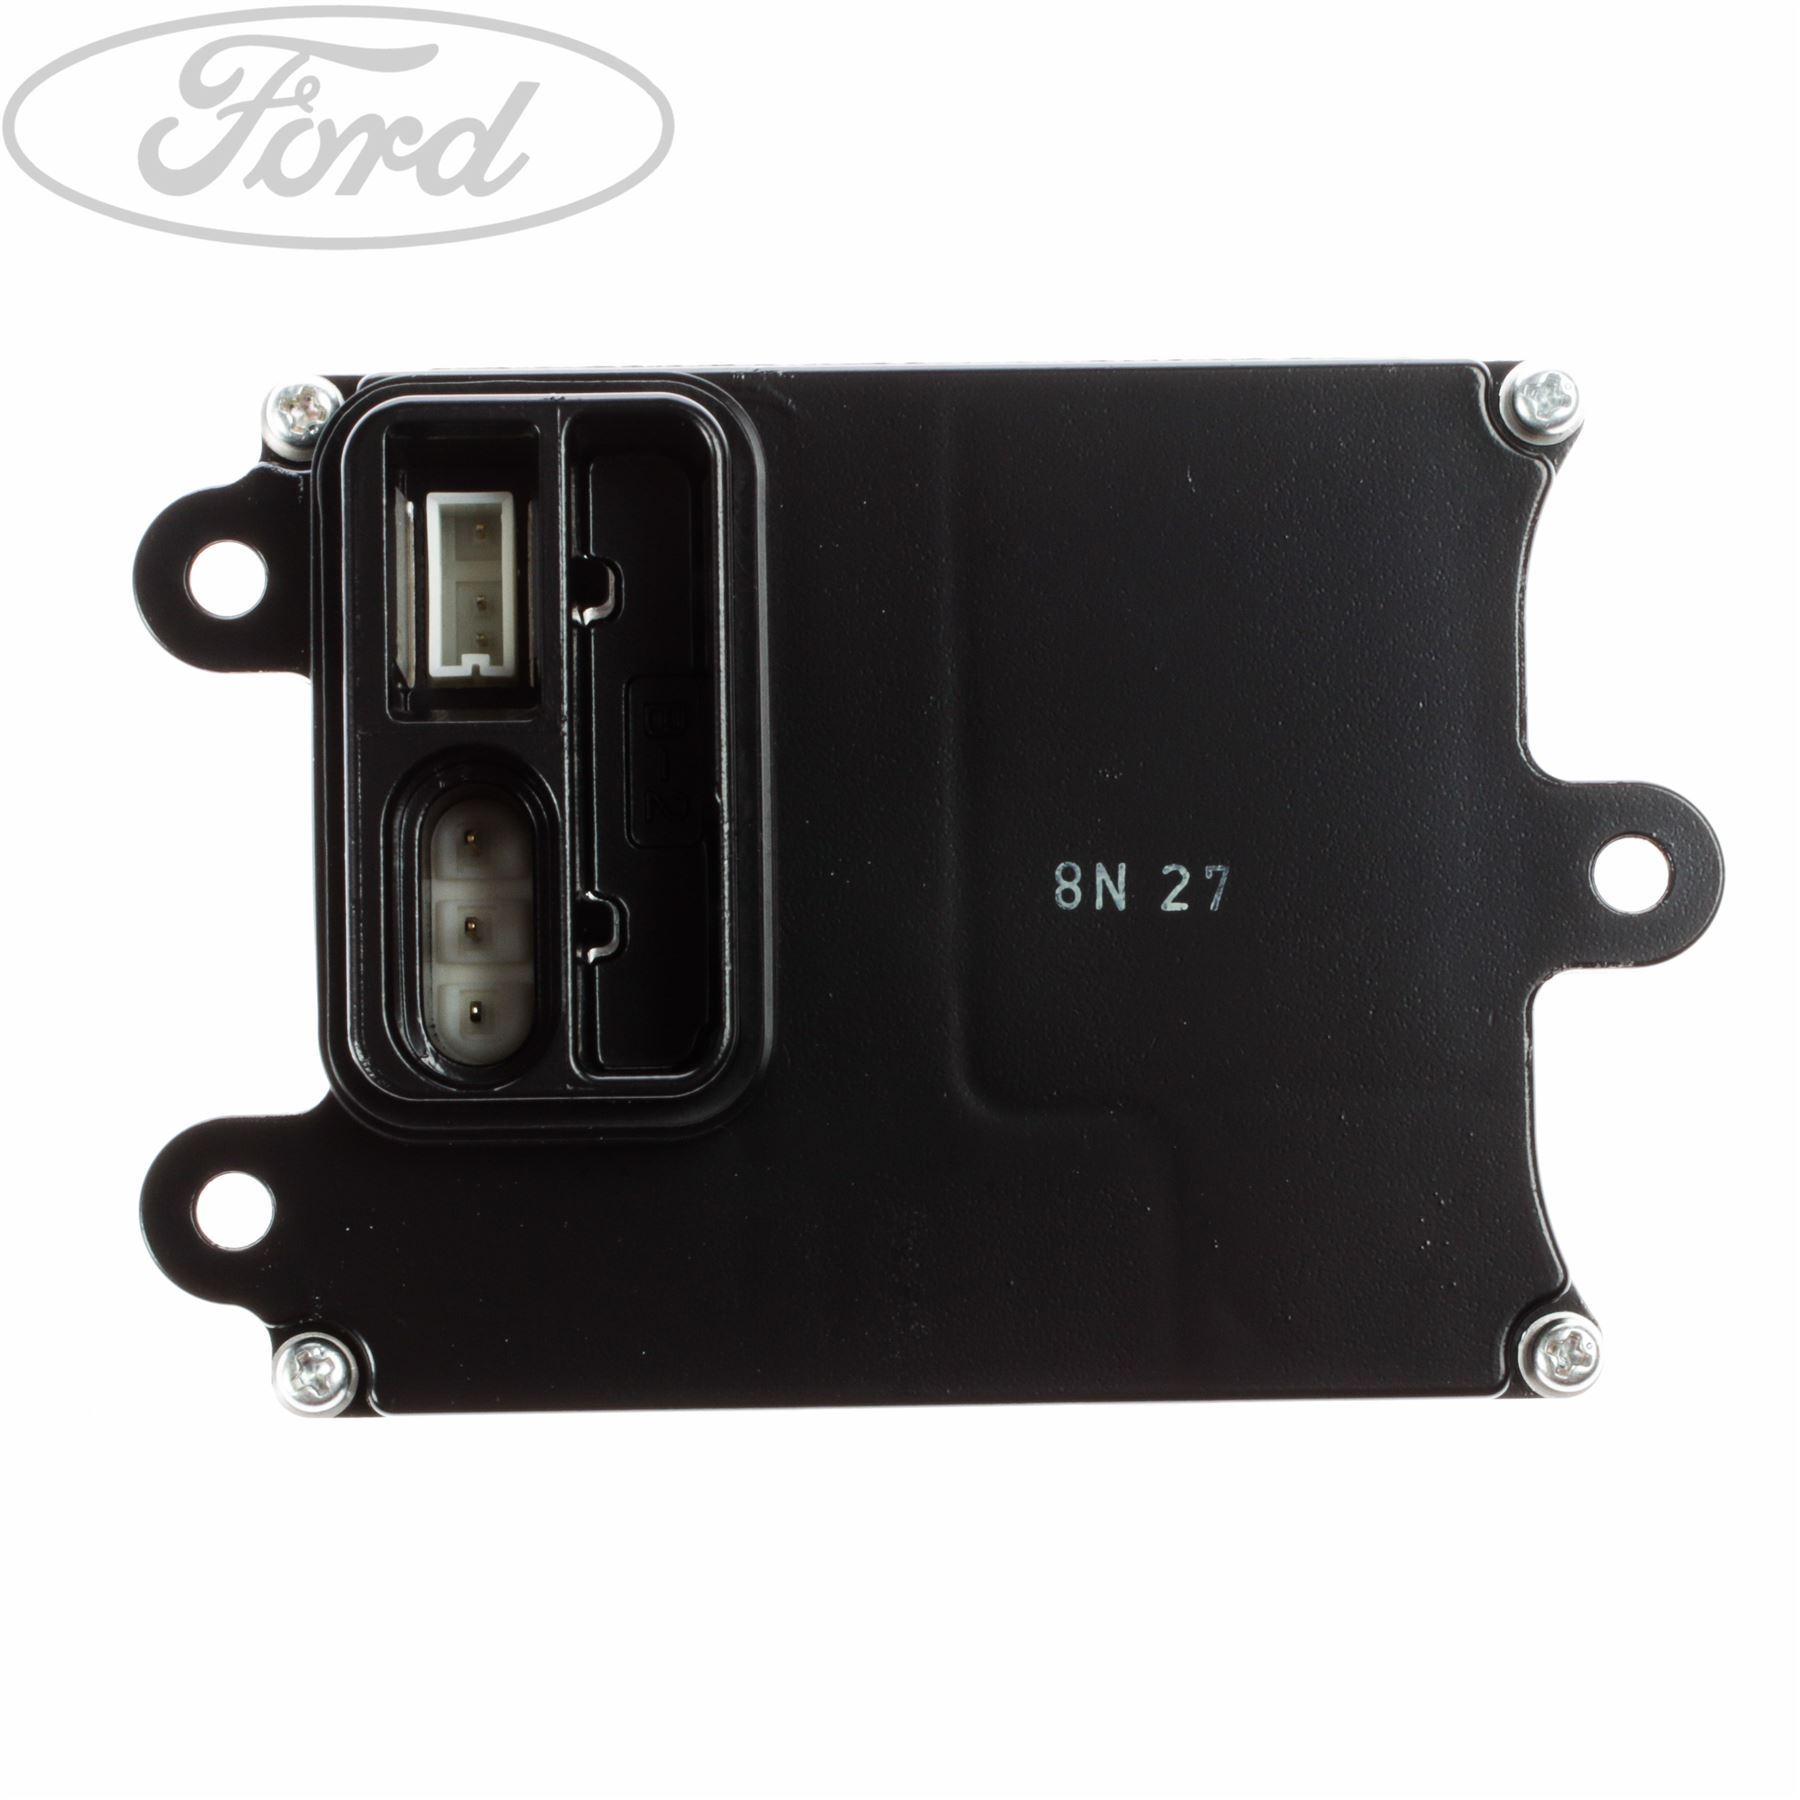 hight resolution of details about genuine ford focus mk2 headlight headlamp ballast assembly 1324264